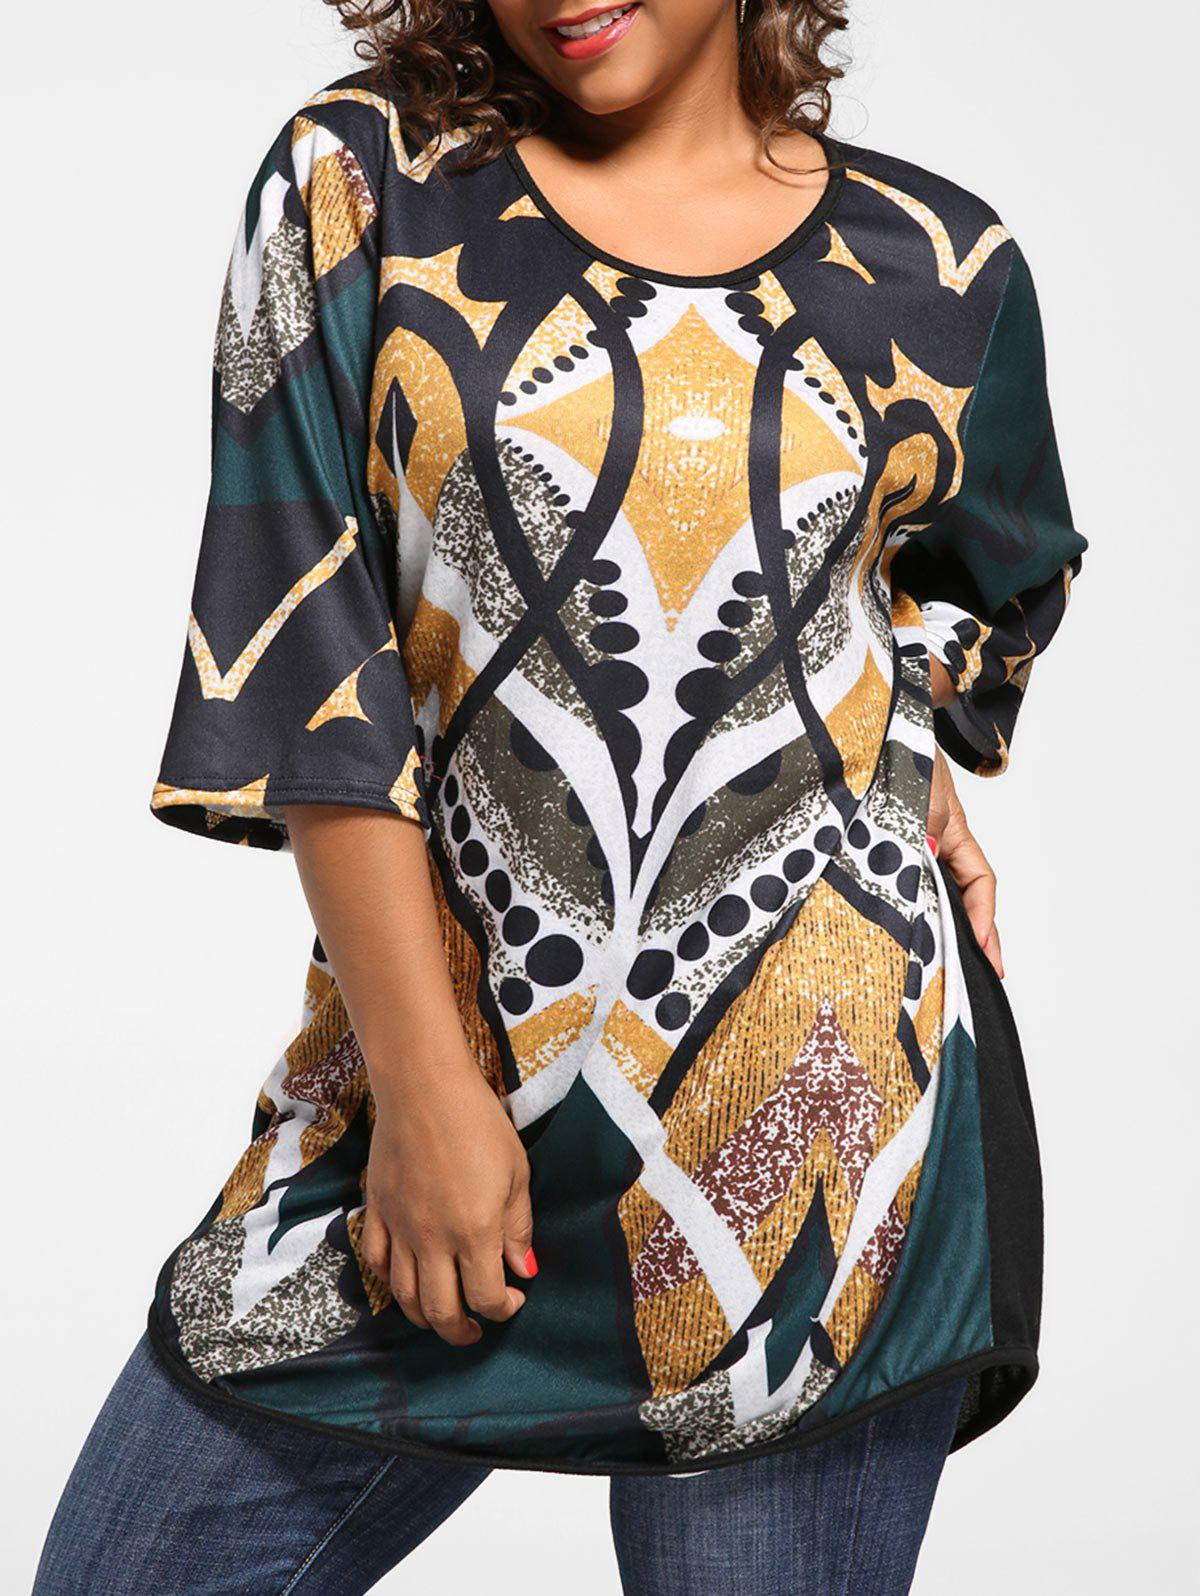 Plus Size Print Tunic Knit TopWOMEN<br><br>Size: 5XL; Color: YELLOW; Material: Acrylic,Polyester,Spandex; Shirt Length: Regular; Sleeve Length: Three Quarter; Collar: Scoop Neck; Style: Casual; Season: Fall,Spring; Pattern Type: Print; Elasticity: Elastic; Weight: 0.3100kg; Package Contents: 1 x Top;